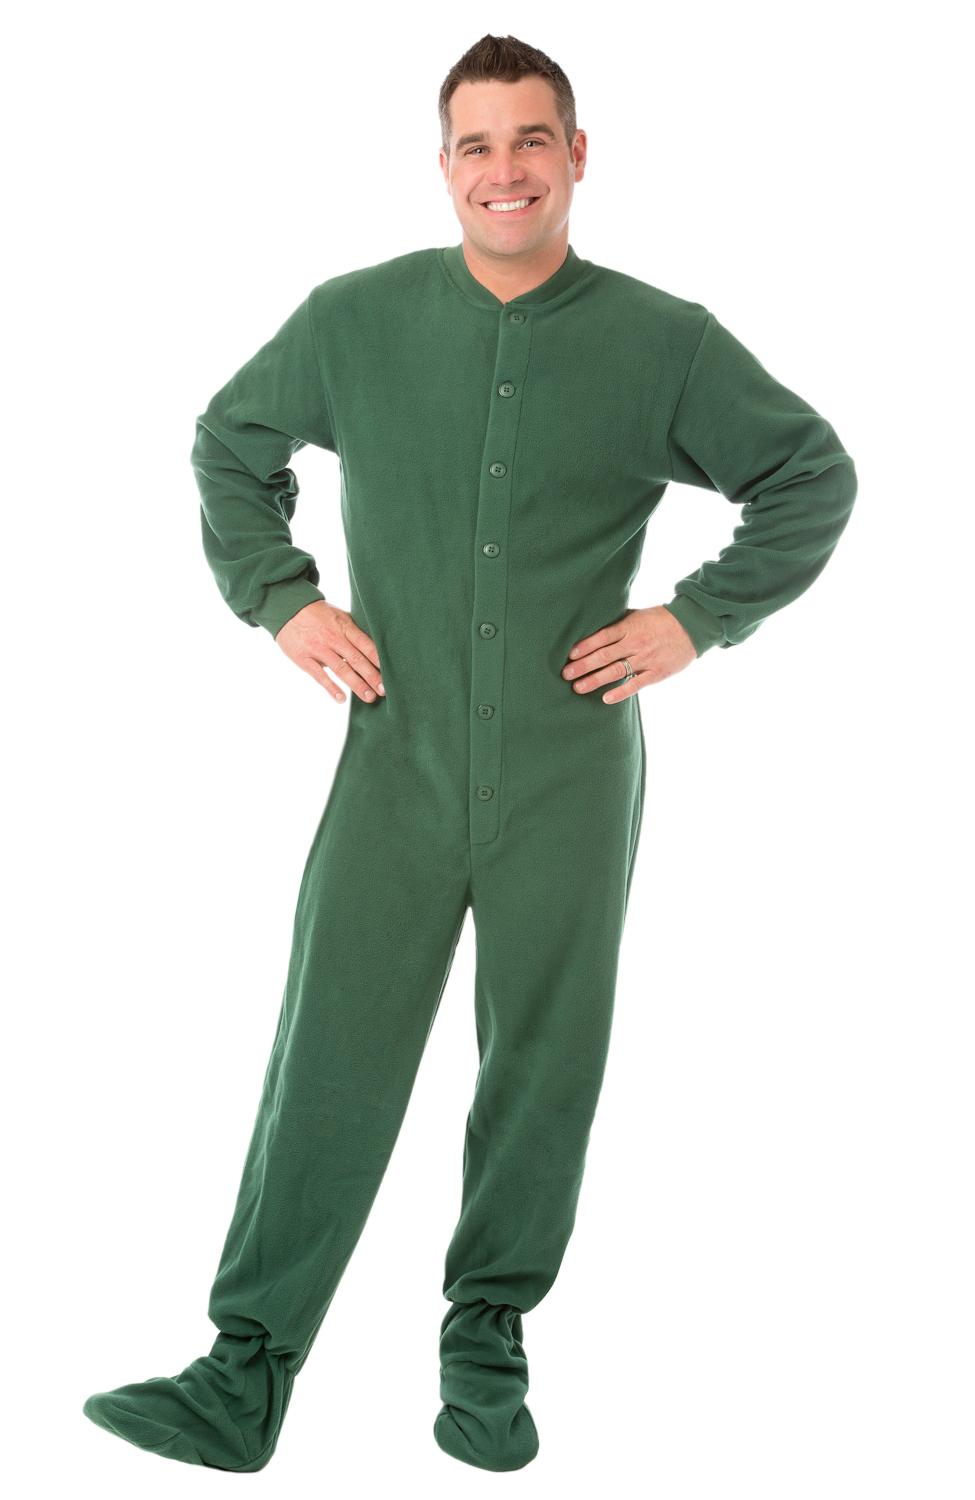 footie pjs for adults drop-seat